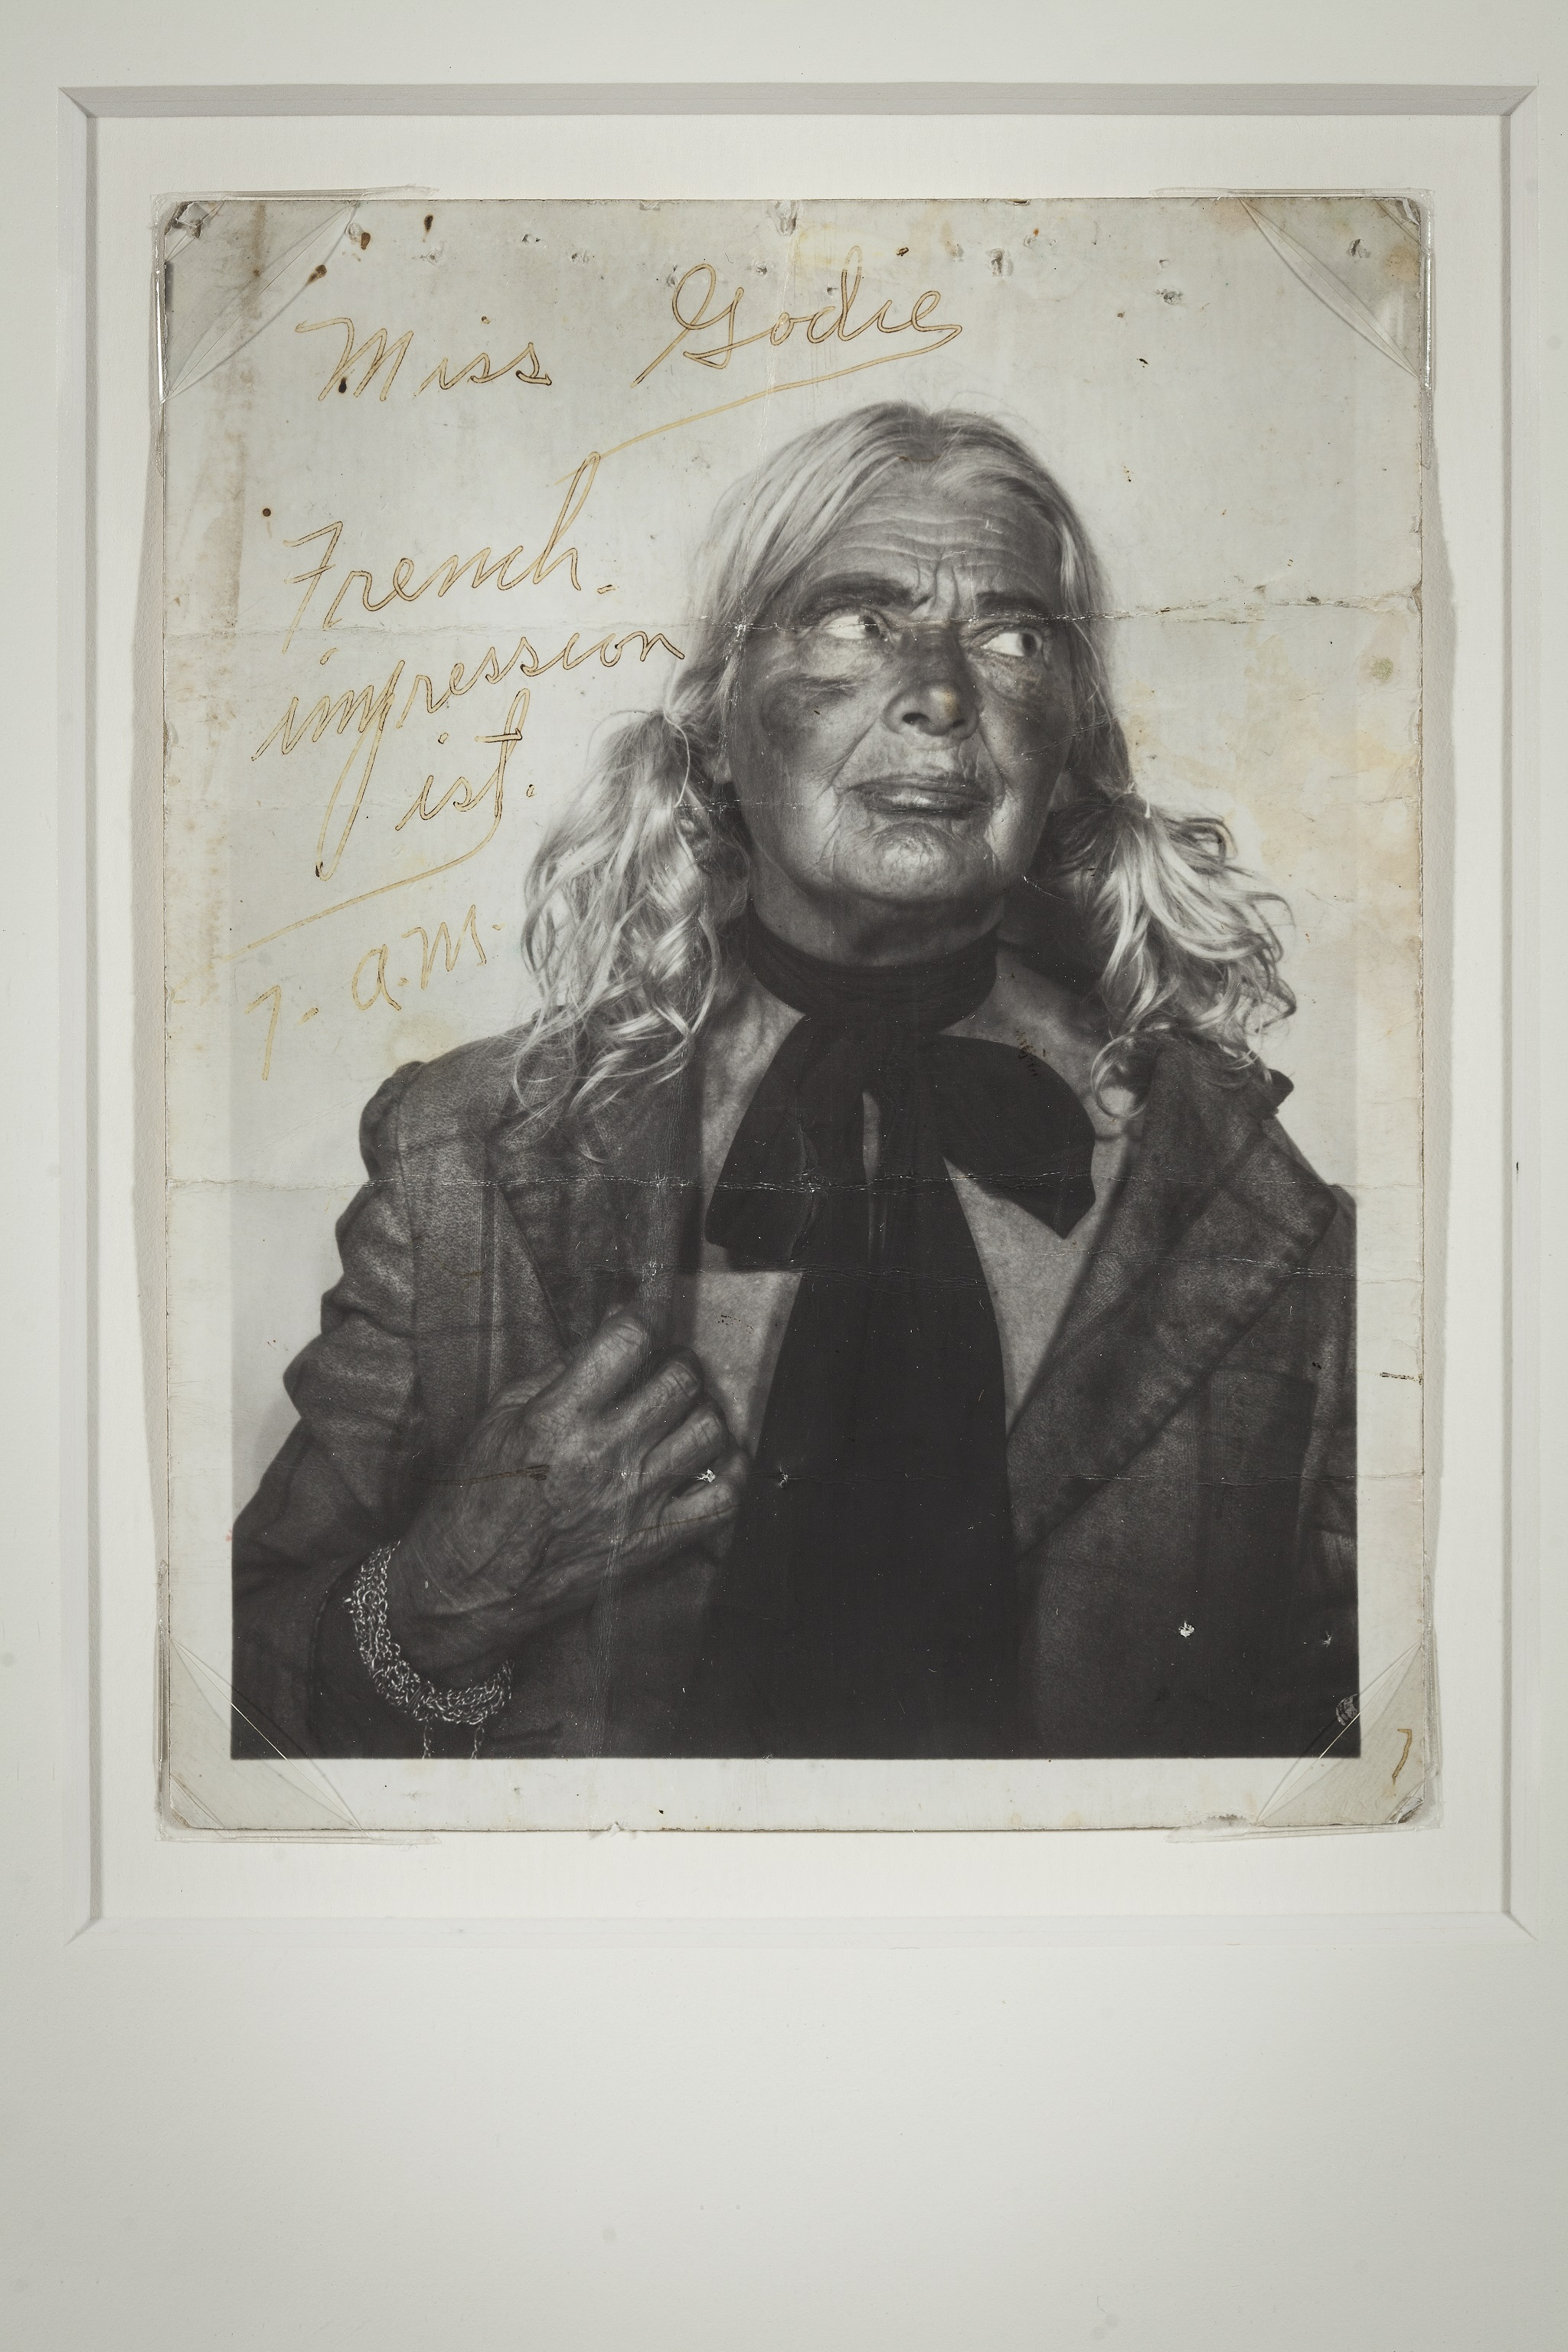 Lee Godie, Untitled (self-portrait), c. 1970–80; gelatin silver print and ink; 5 x 3 3/4 in. Collection of Carl Hammer, IL.